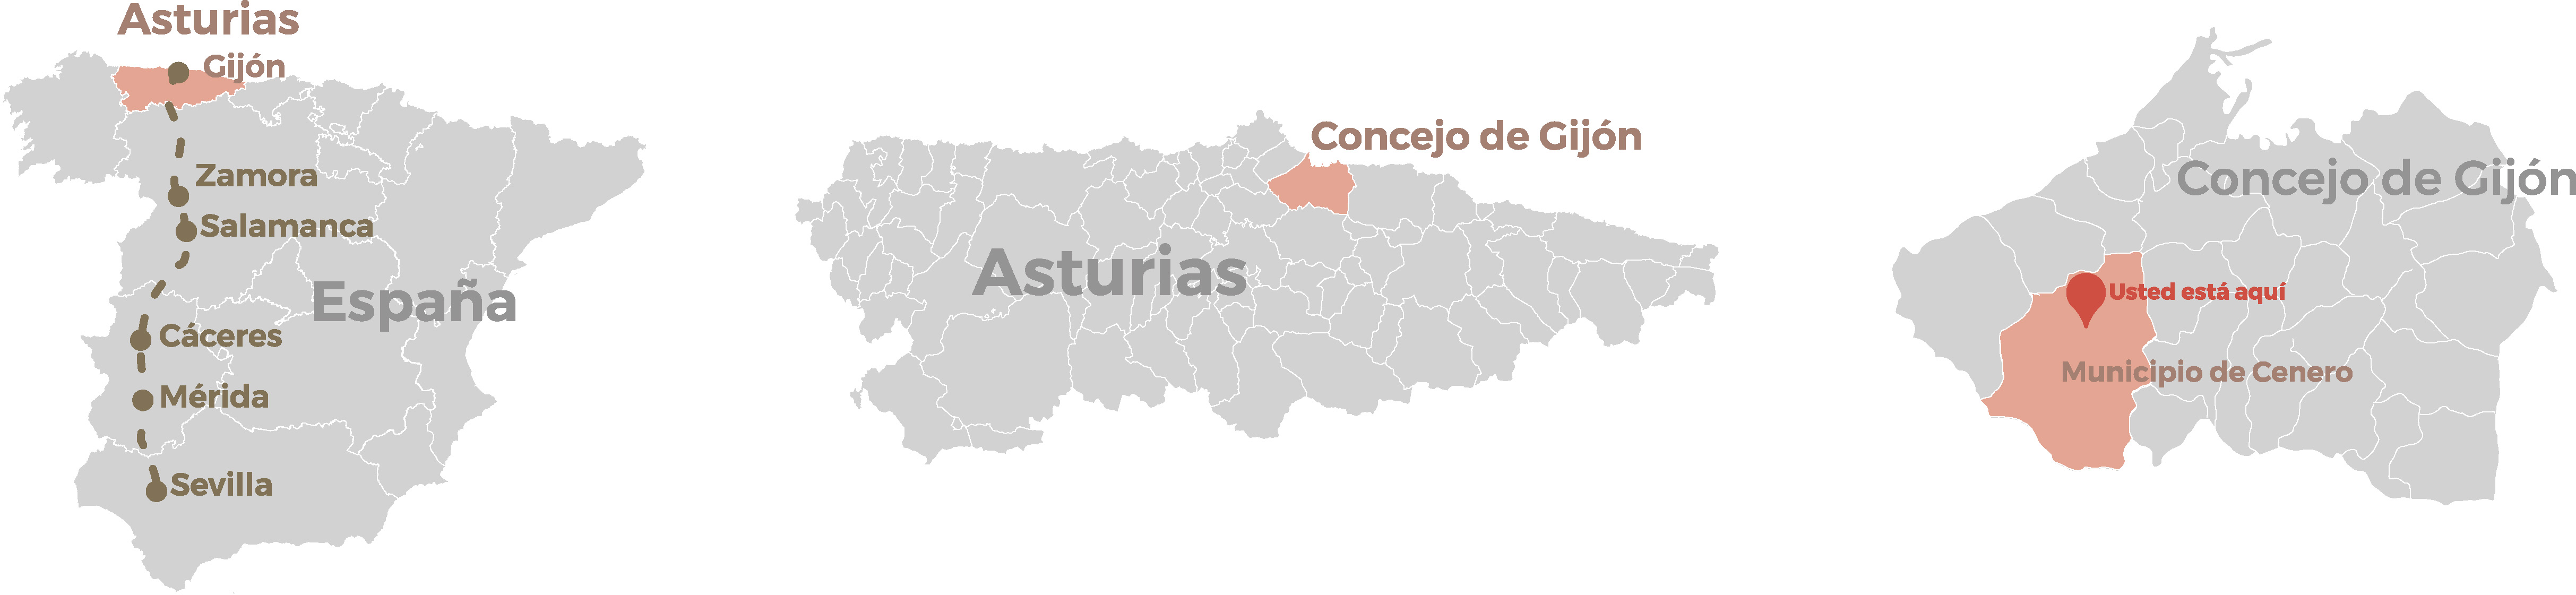 Asturias map to show the position of the specific region where the ruins are